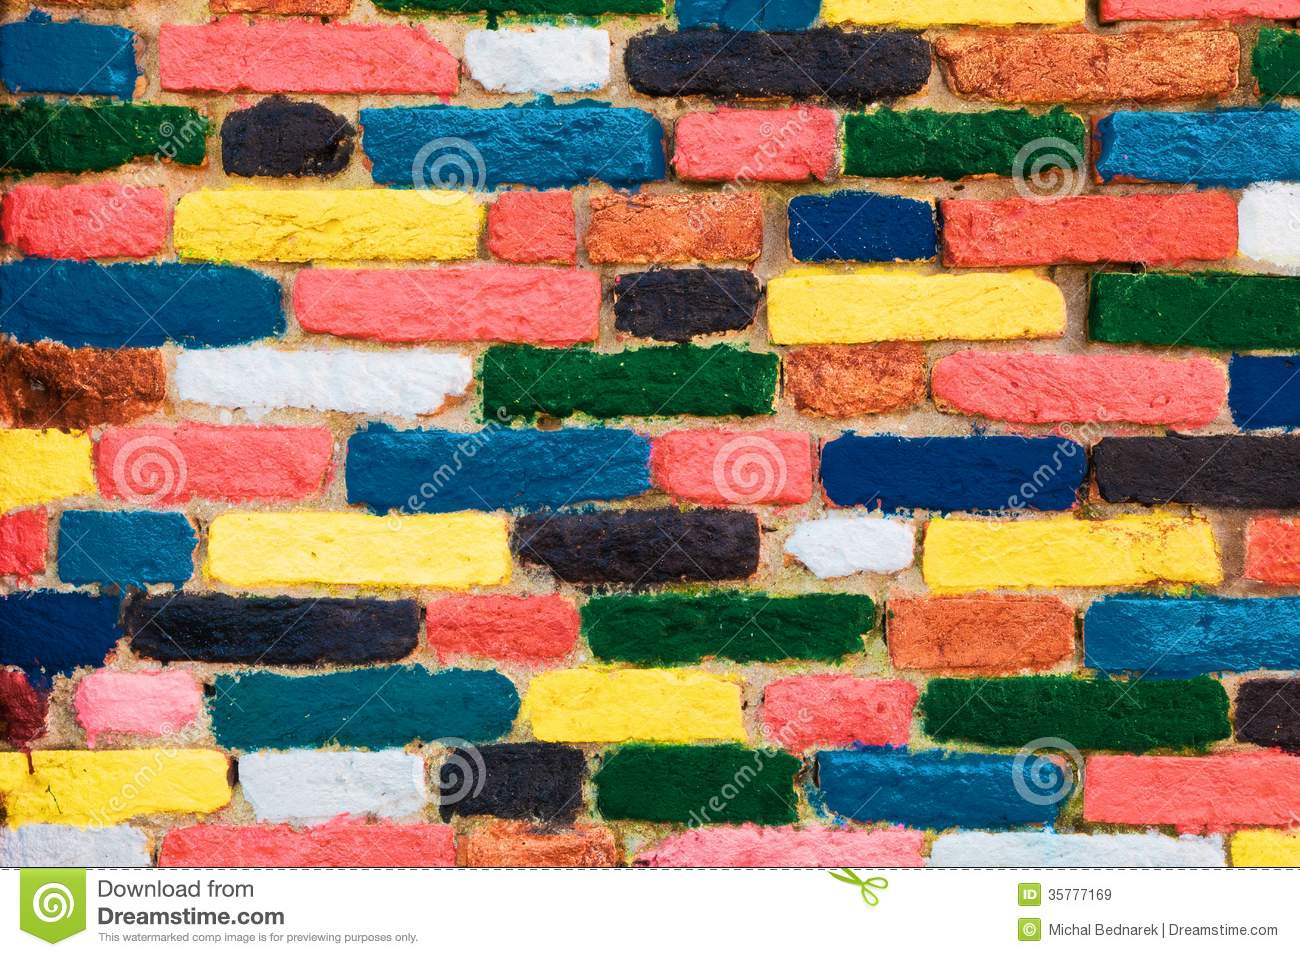 Colorful Wall Treatment Unique Pattern Colorful Brick Wall Unique Background Royalty Free Stock